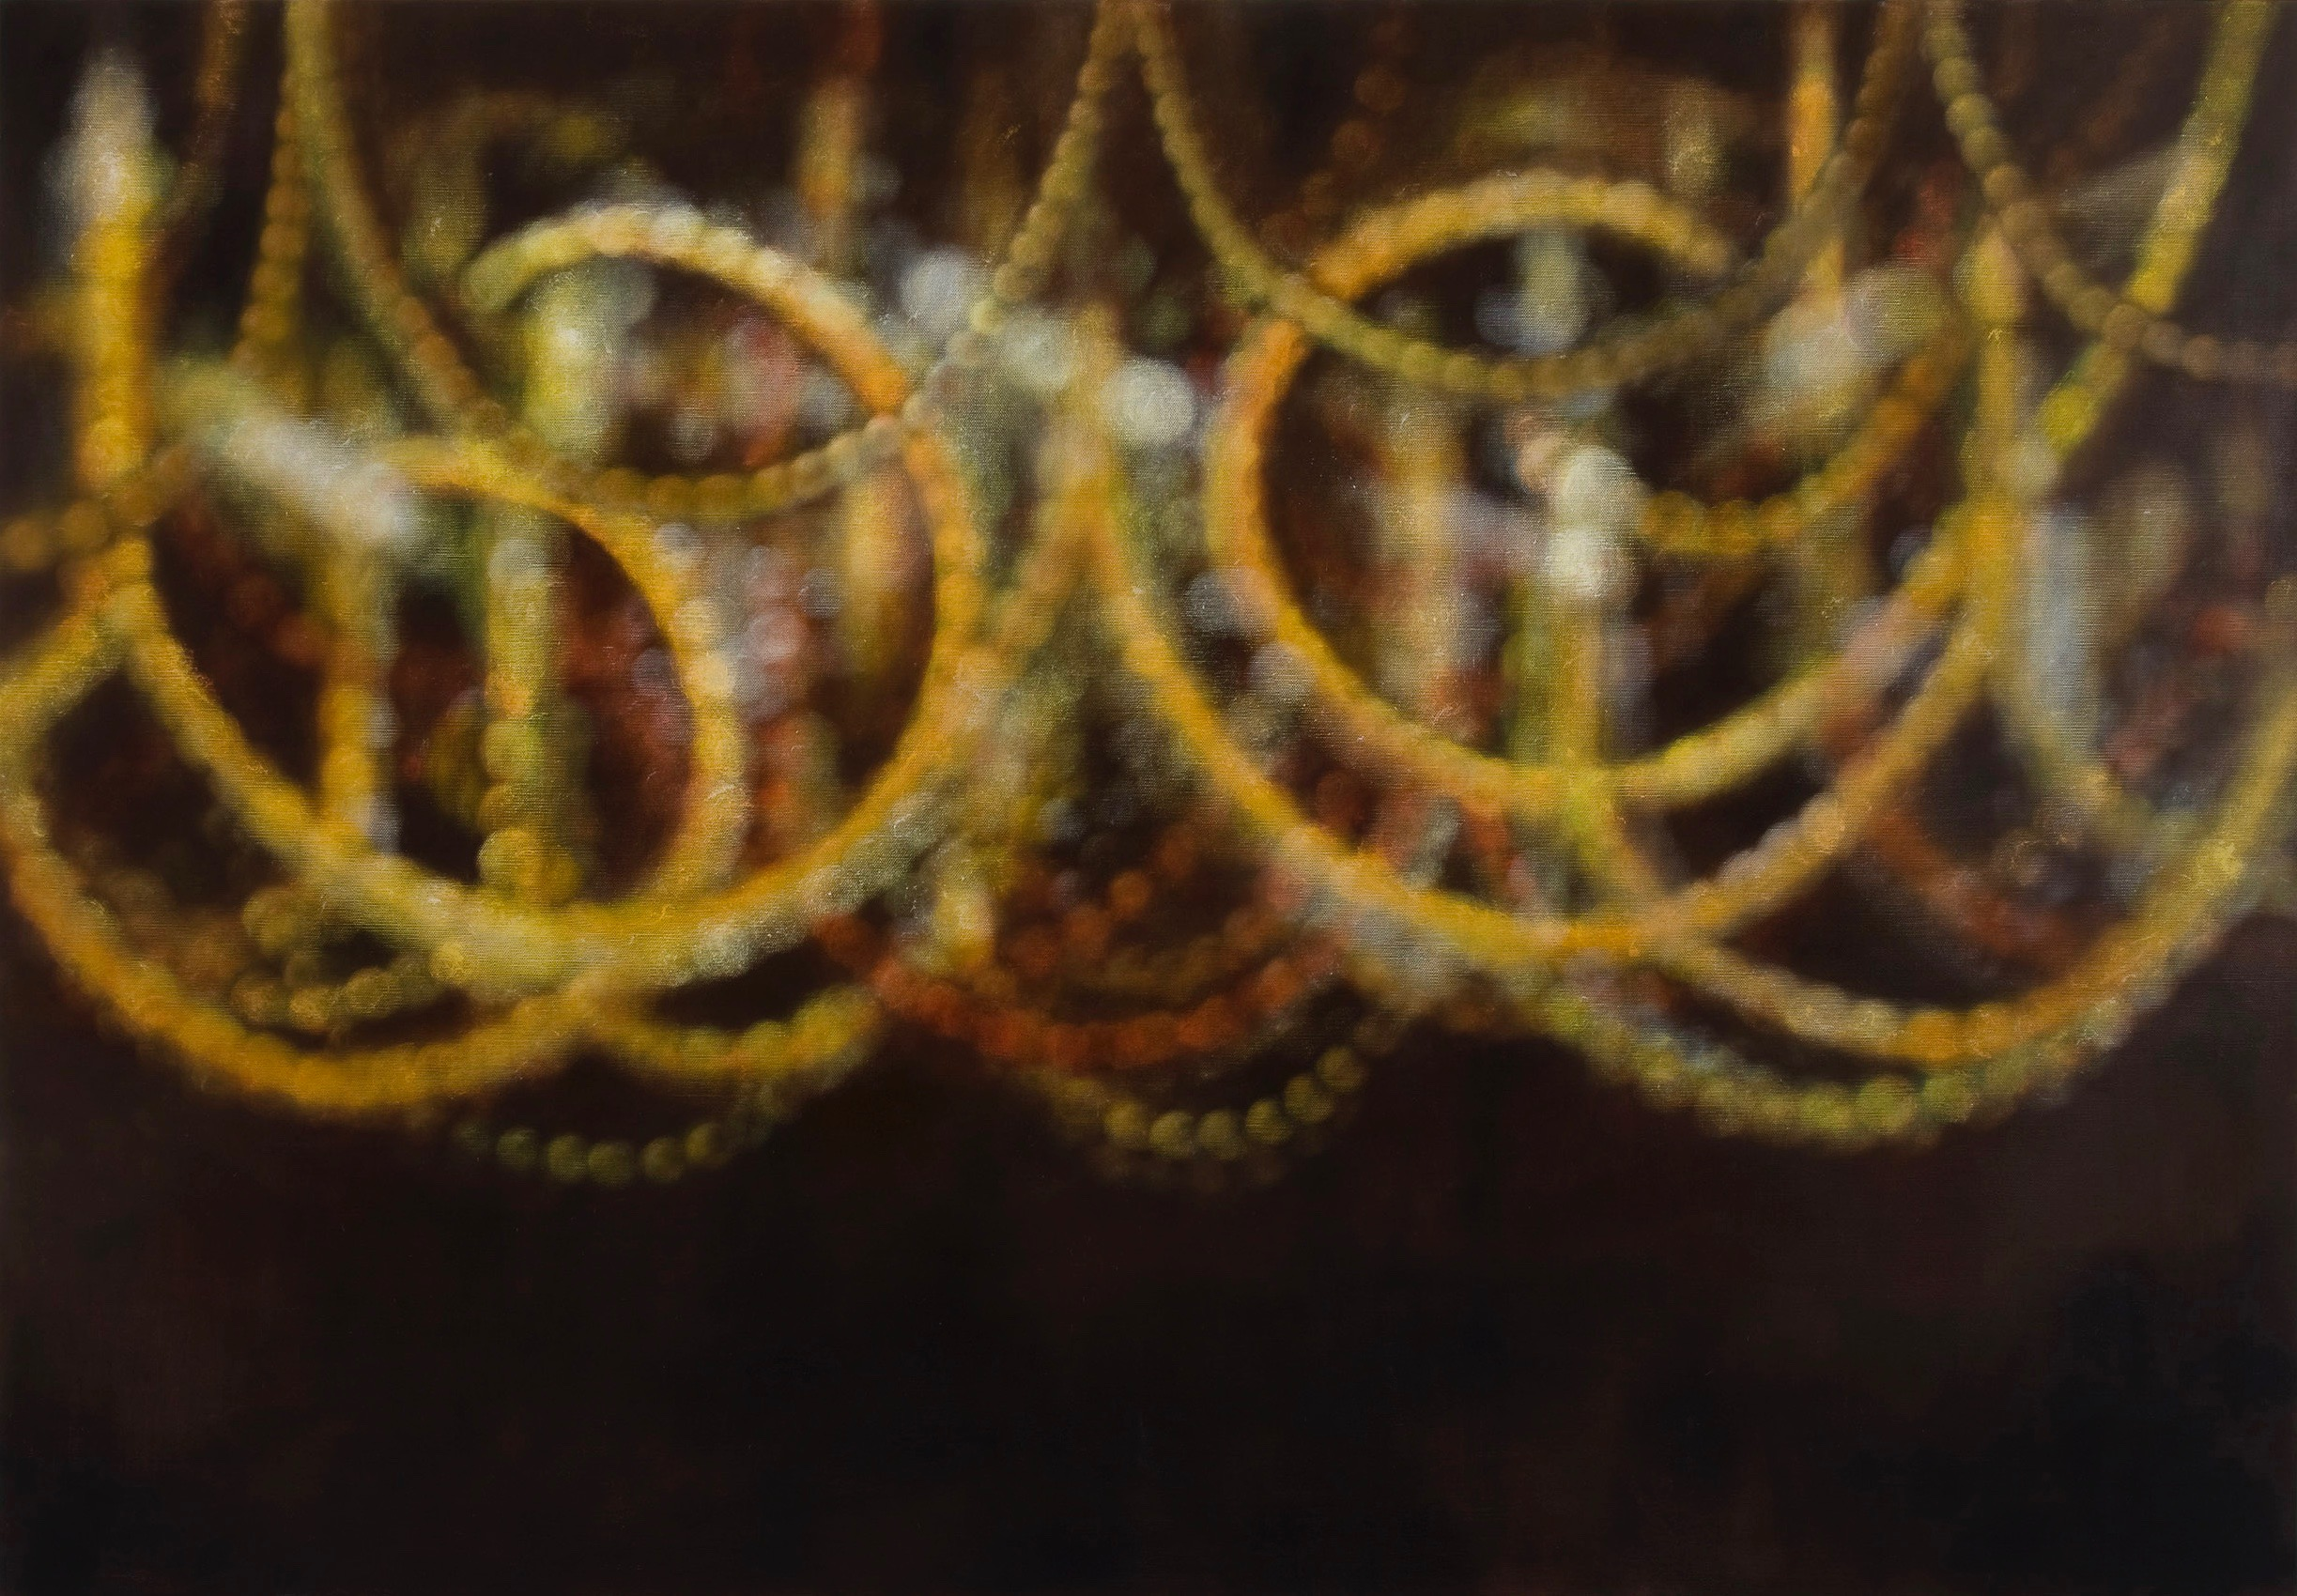 Lustre d'oscillation, 2008, oil on linen, 138x200cm